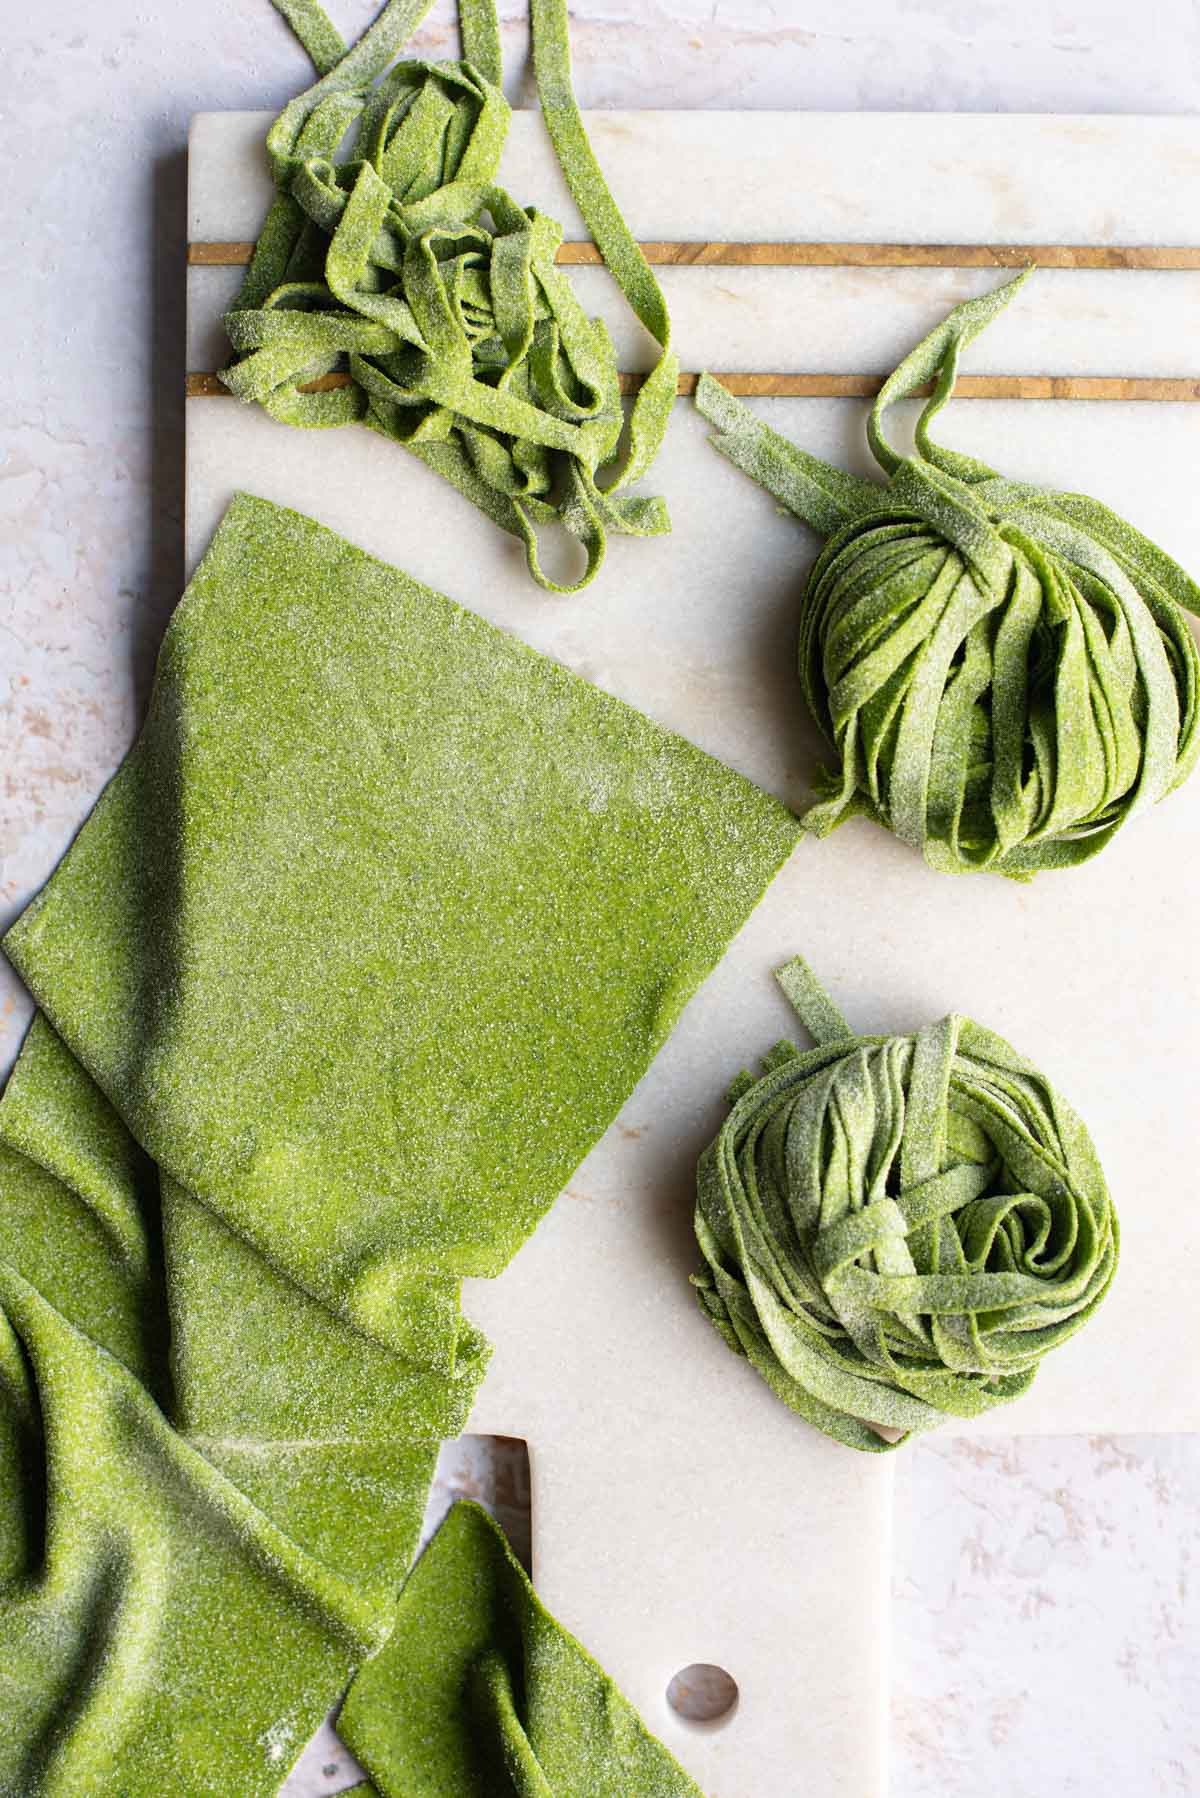 An overhead shot of spinach pasta dough cut into shapes on a light surface